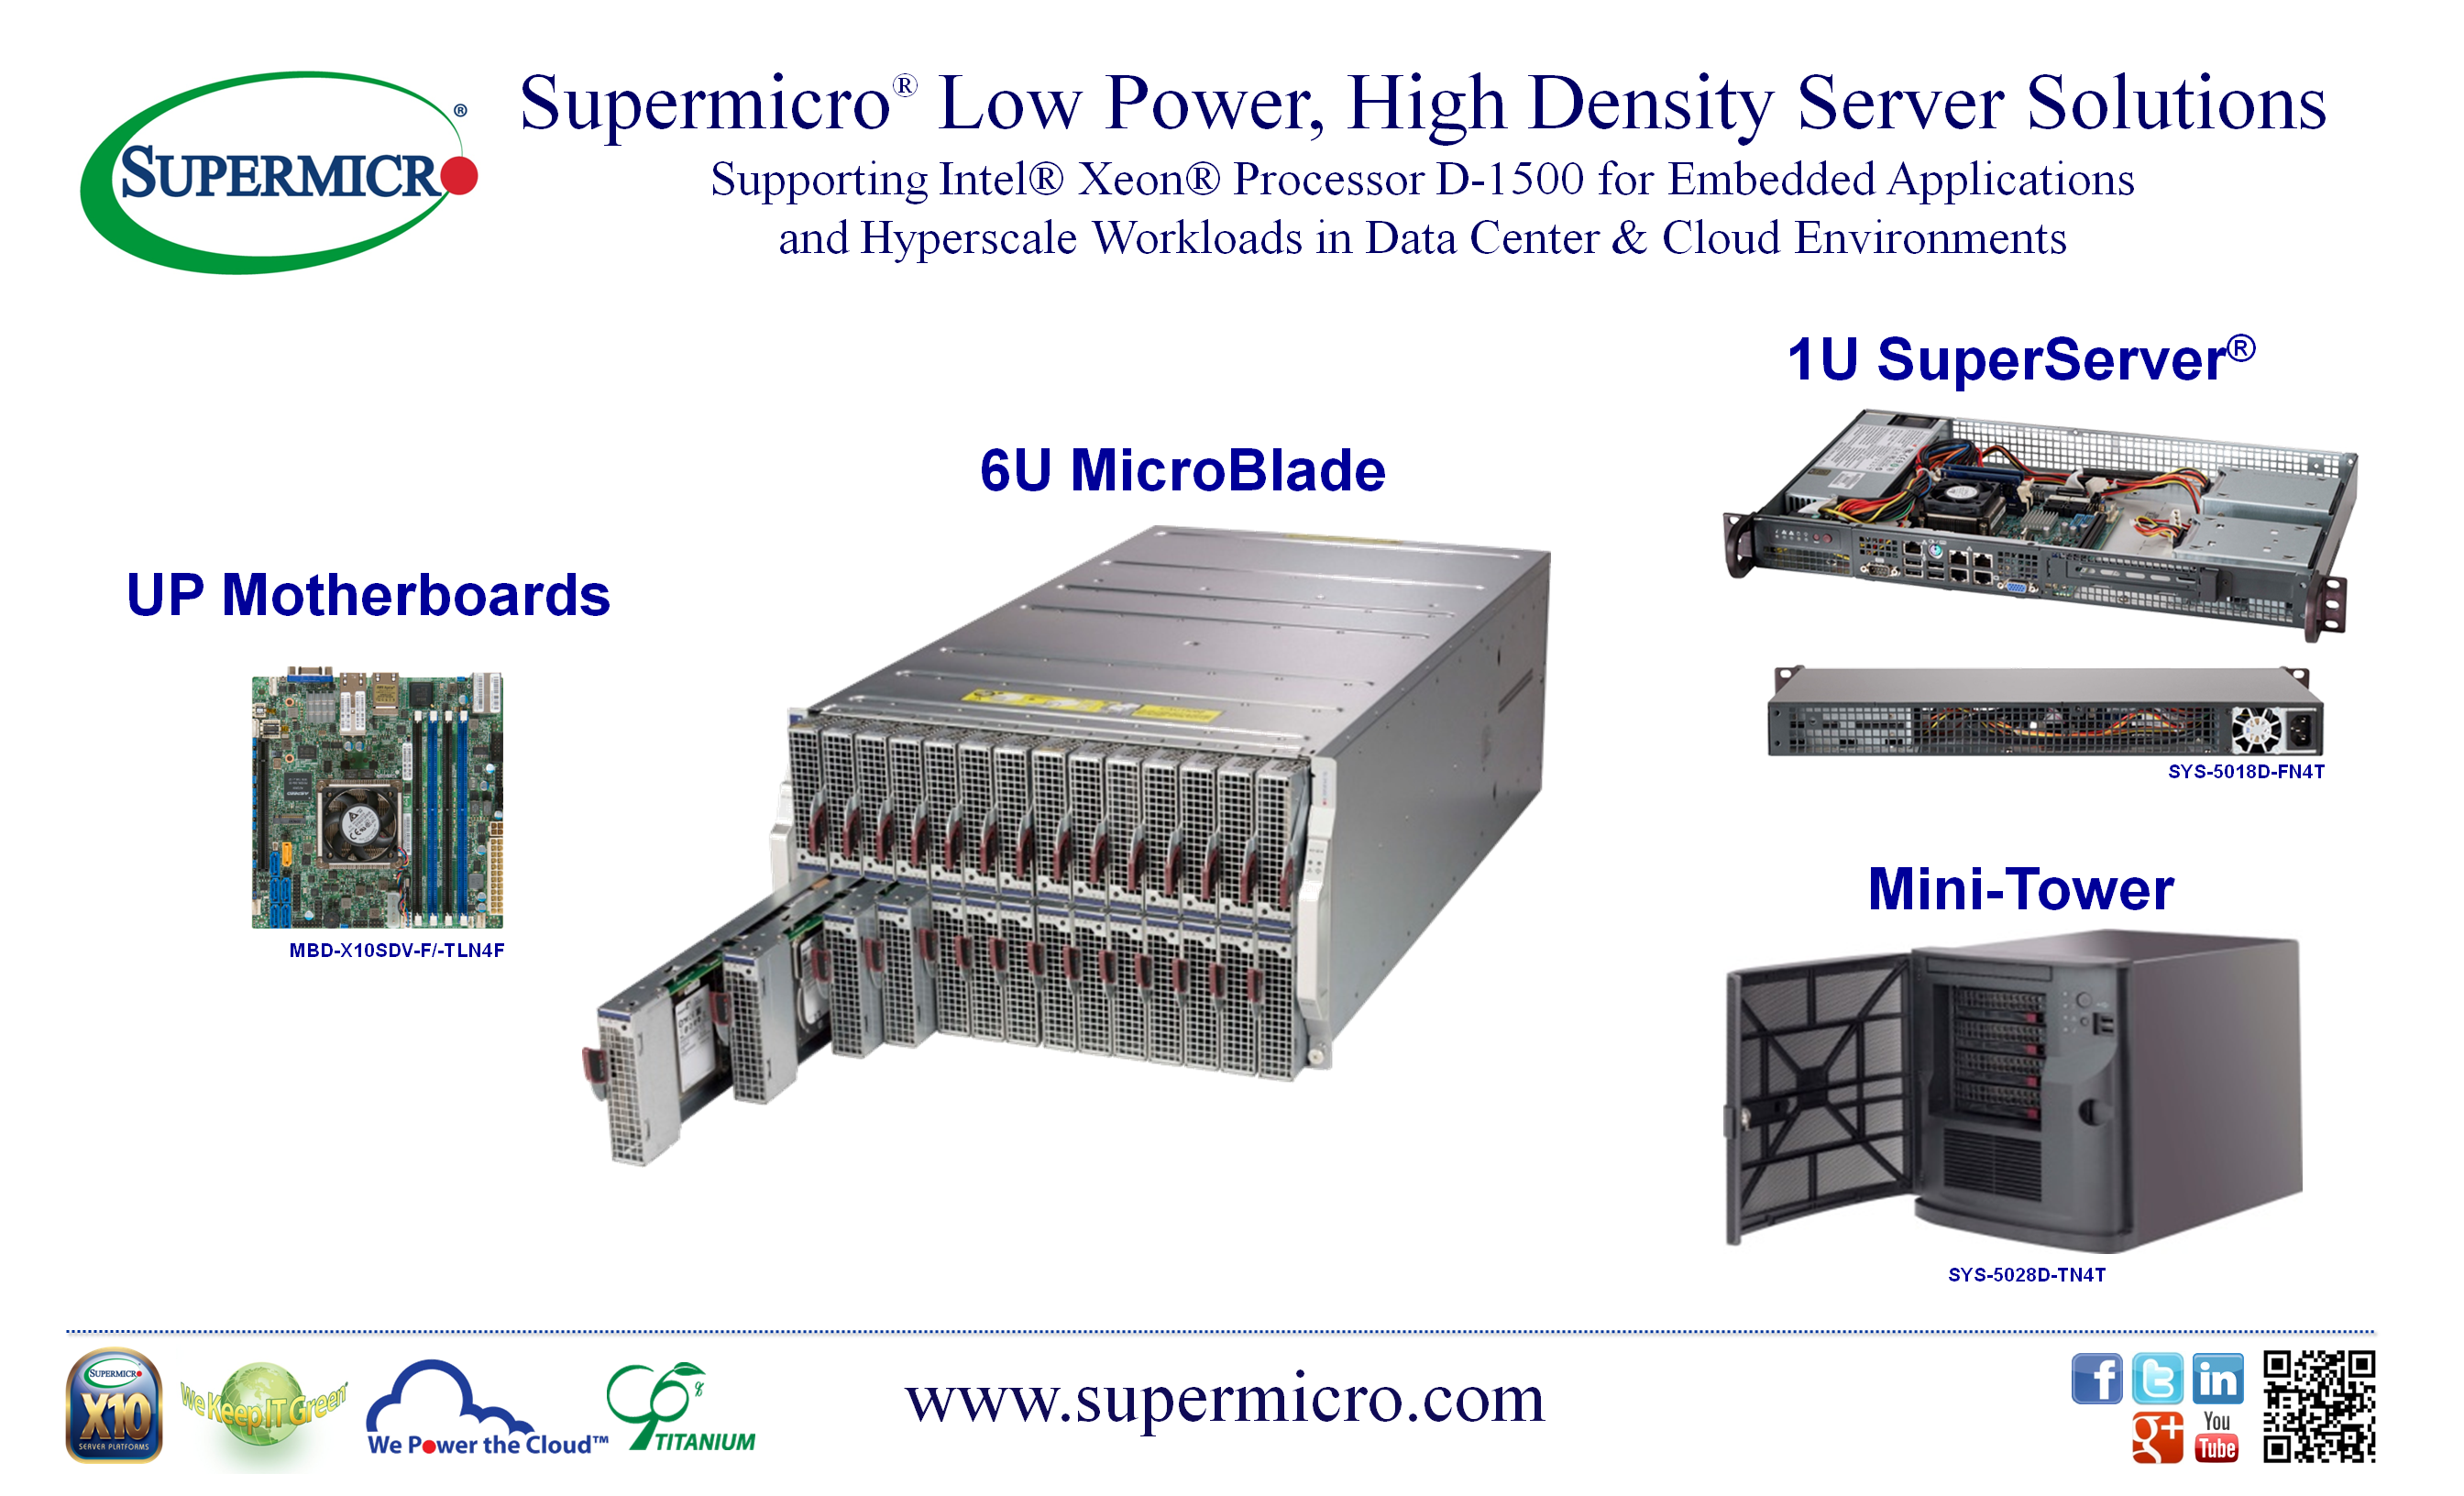 Supermicro Xeon D solutions